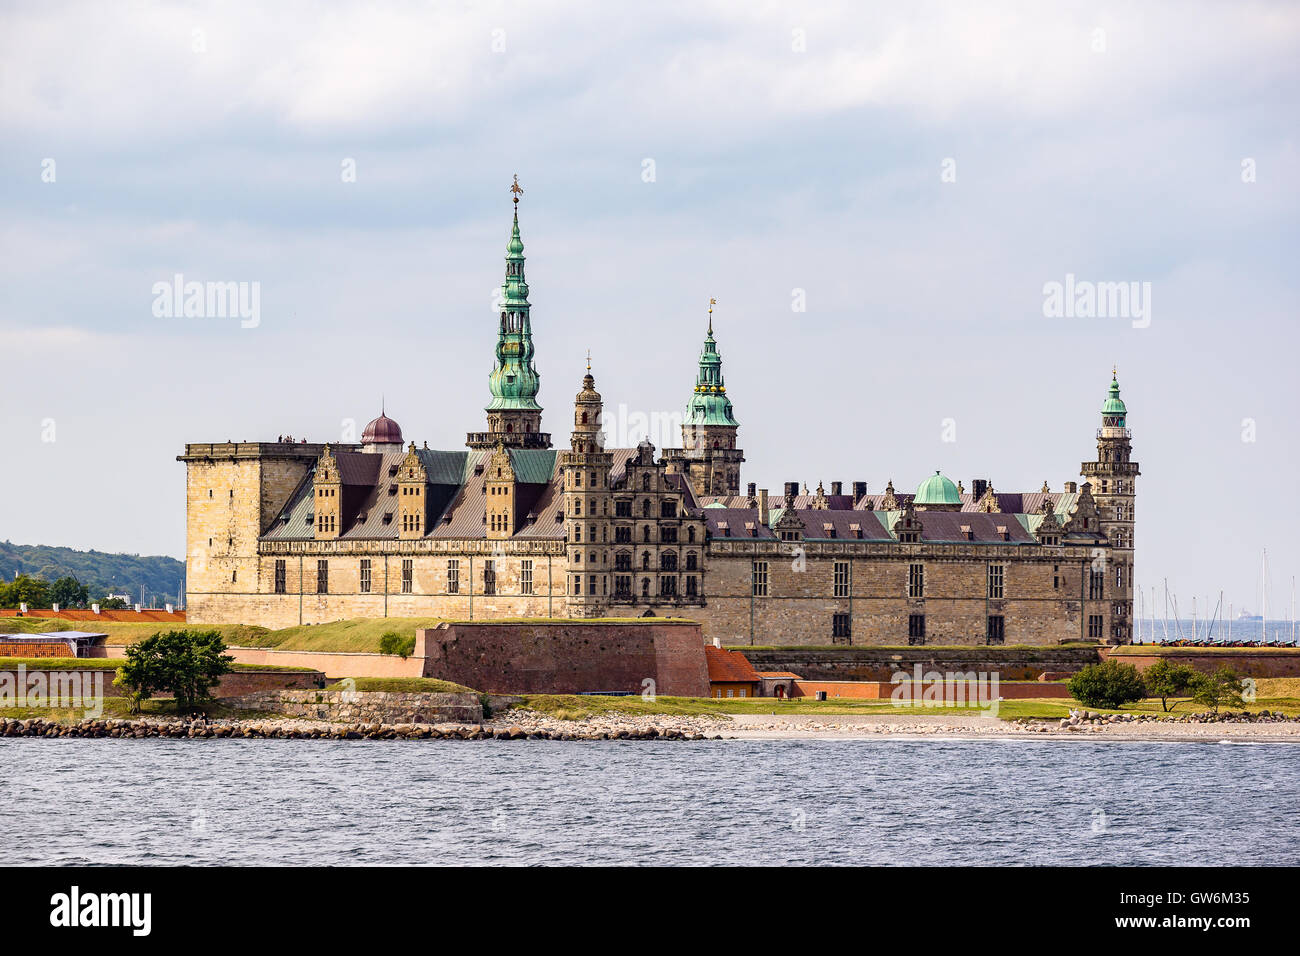 Kronborg castle from the seaside - Stock Image